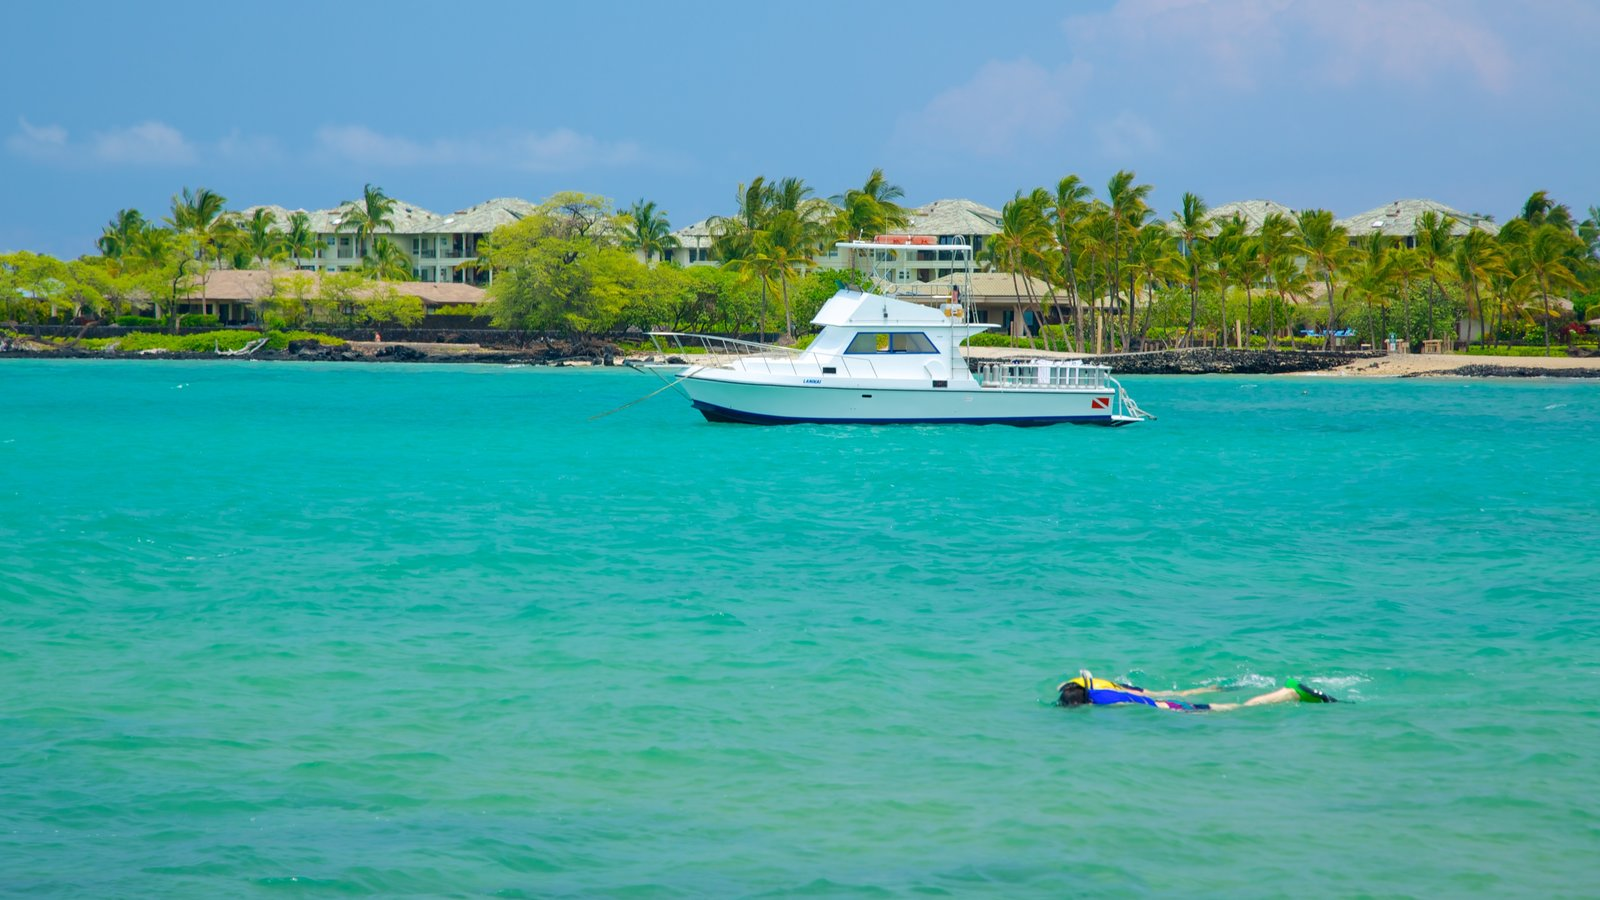 Hawaii which includes a luxury hotel or resort, landscape views and snorkeling